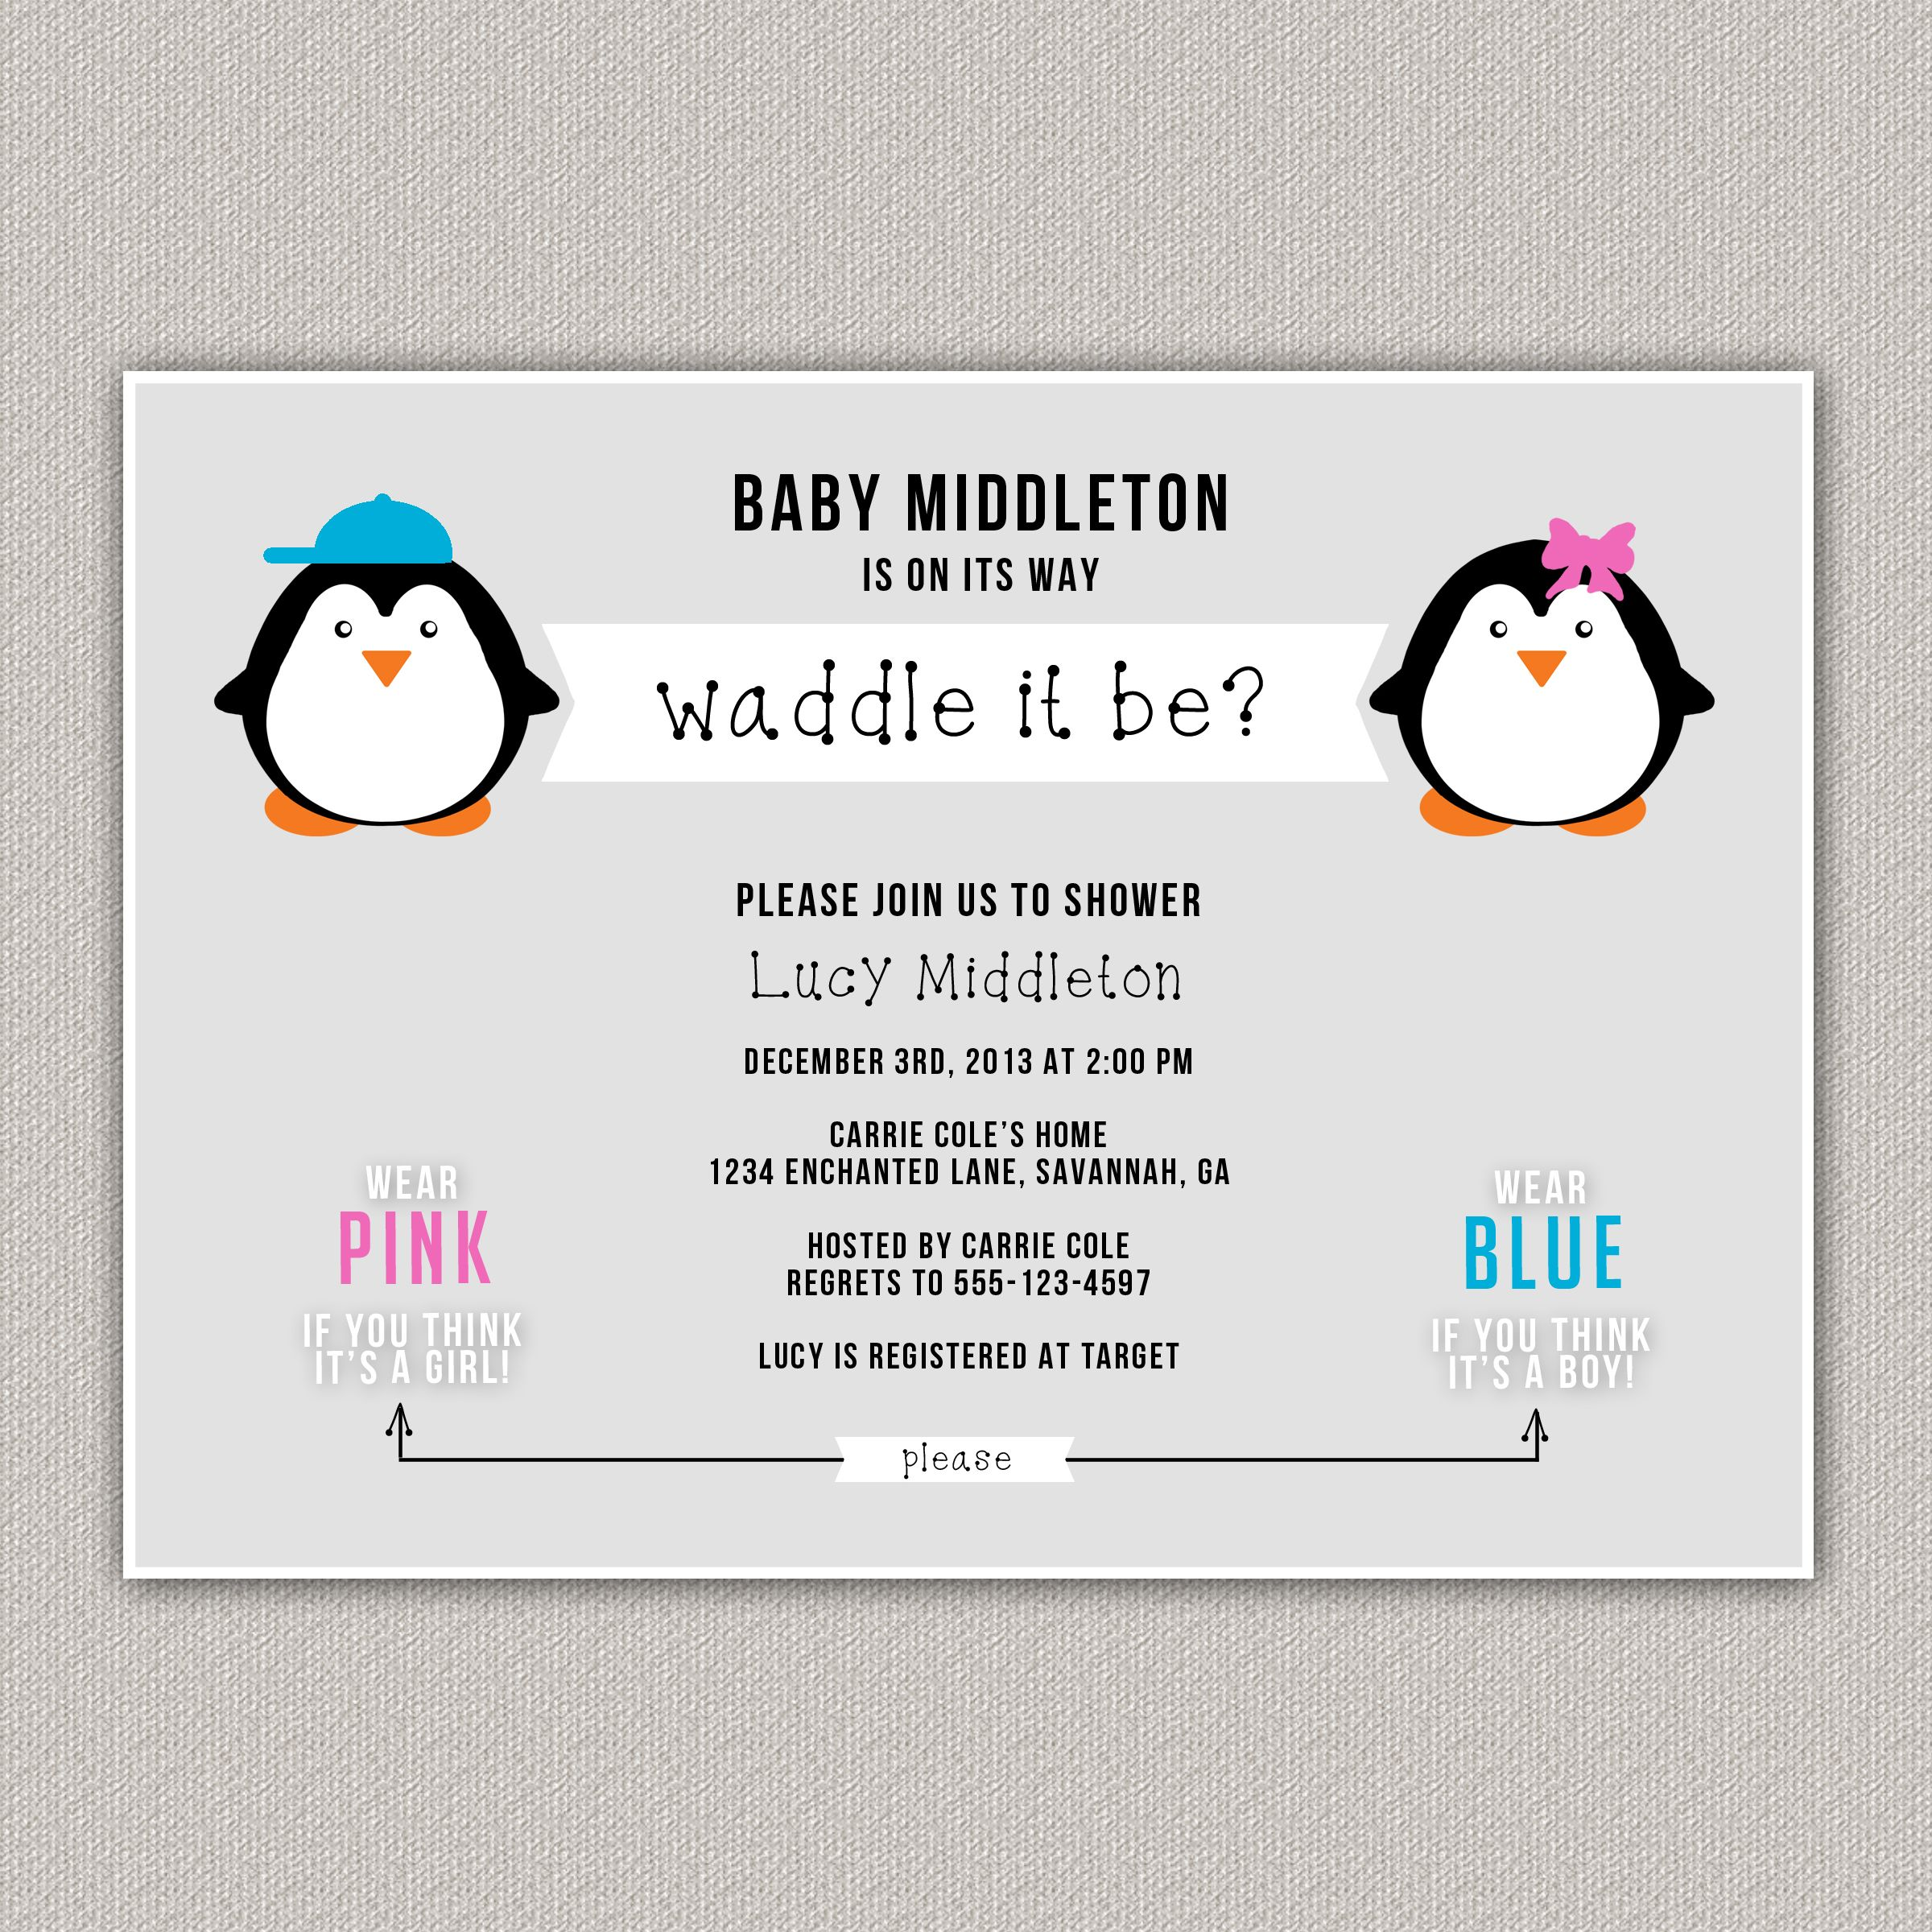 Waddle It Be Baby Shower Invitation, Guess the Gender Baby Shower ...